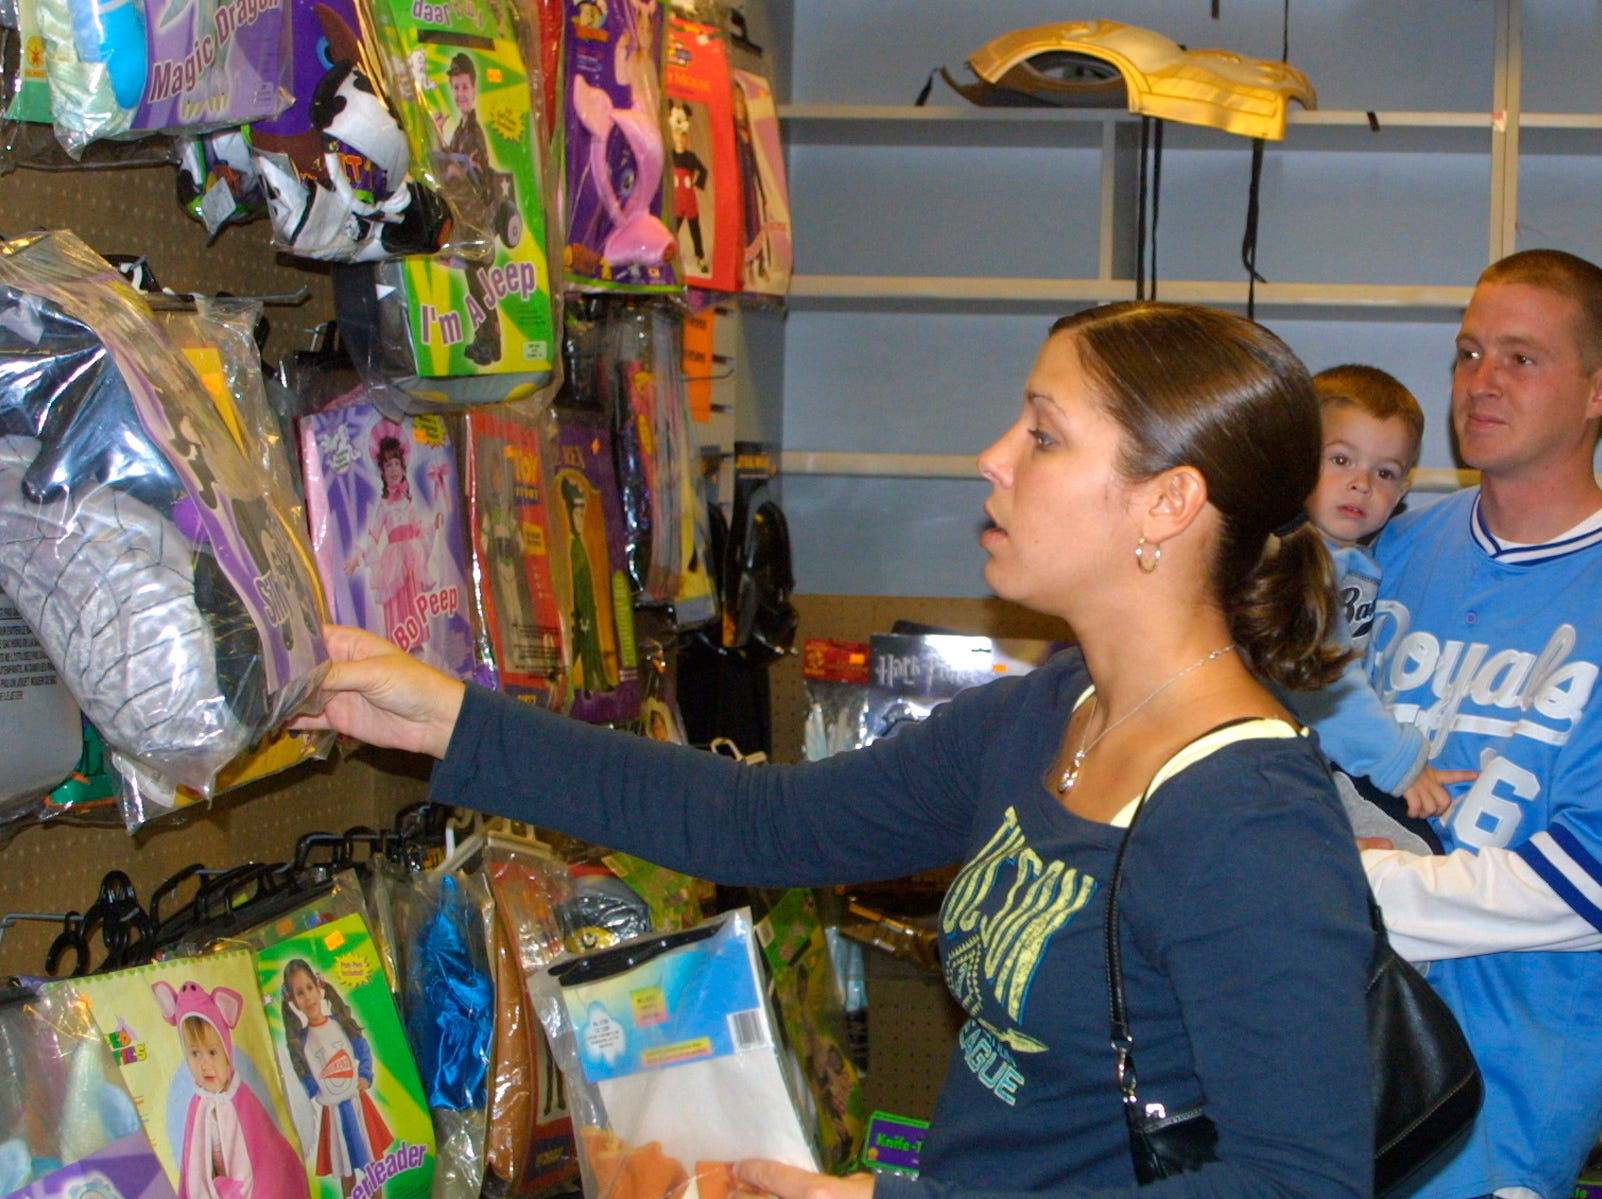 2005: Shannon Hardy, foreground, searches for a Halloween costume for he 2-year-old son, Maximus Maynard, who is being held by his father, Joe Maynard.